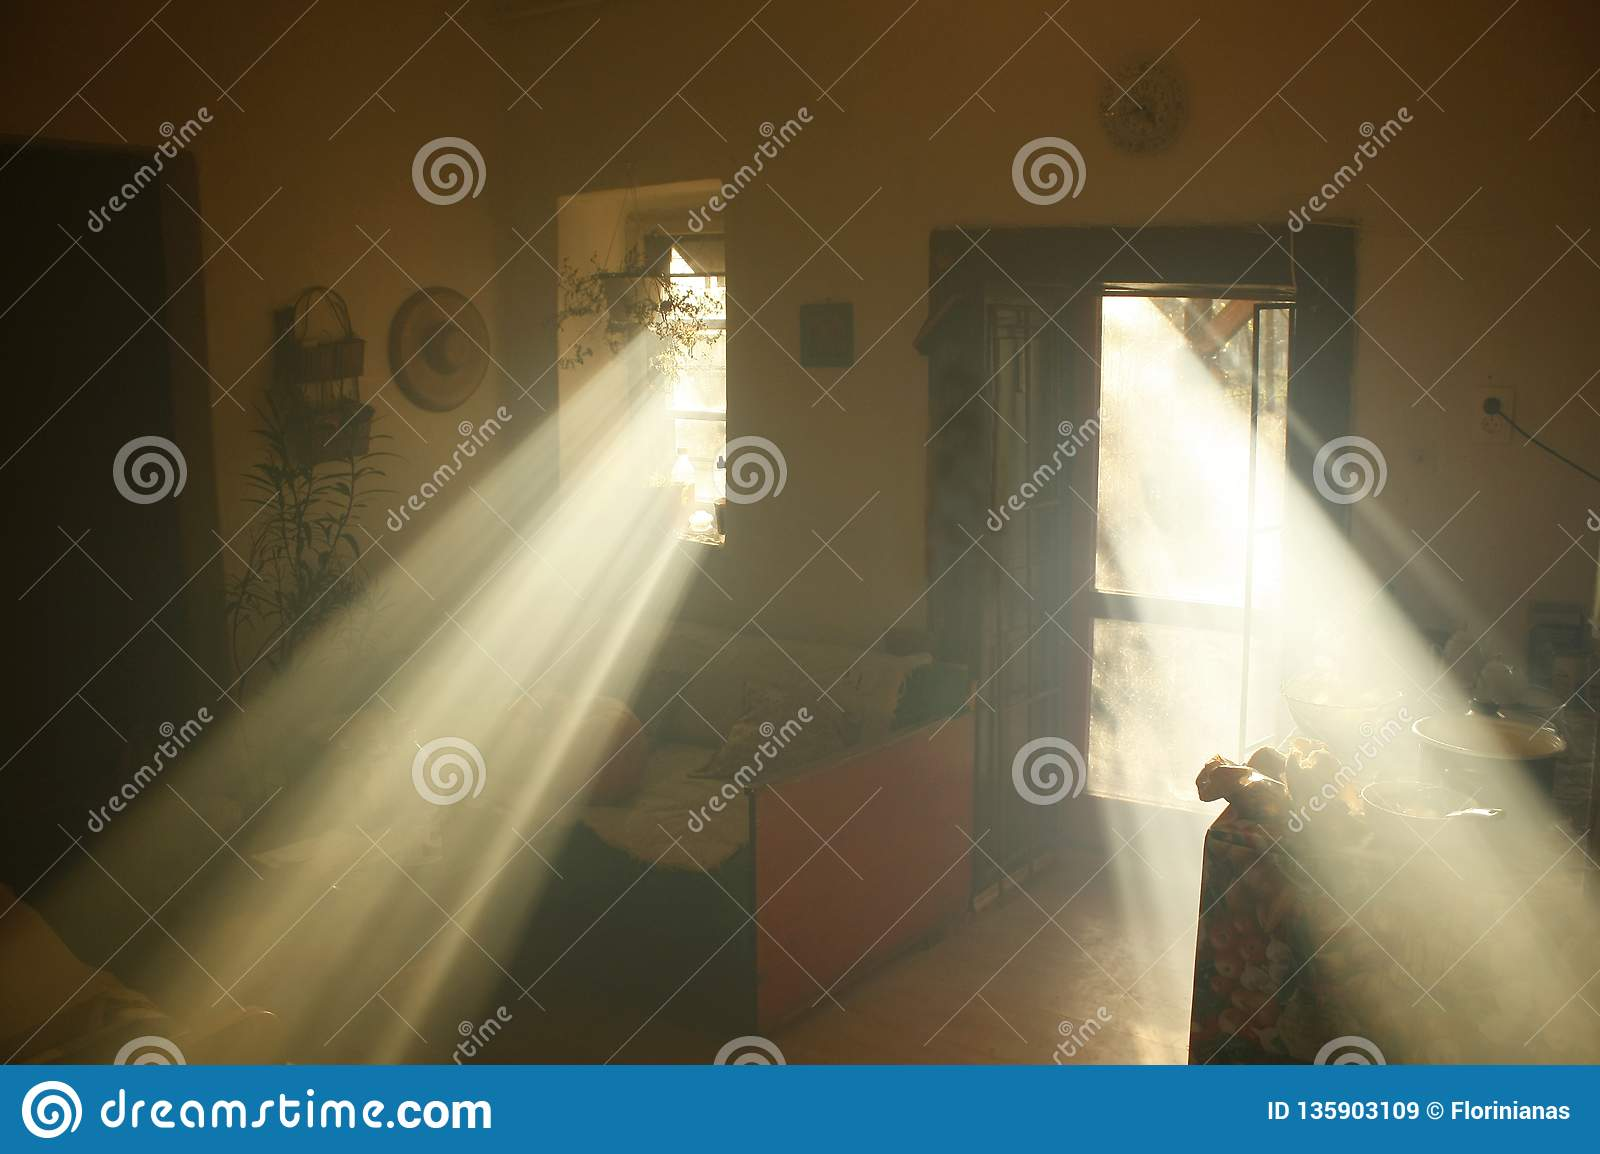 Heavenly light in a dusky old house.